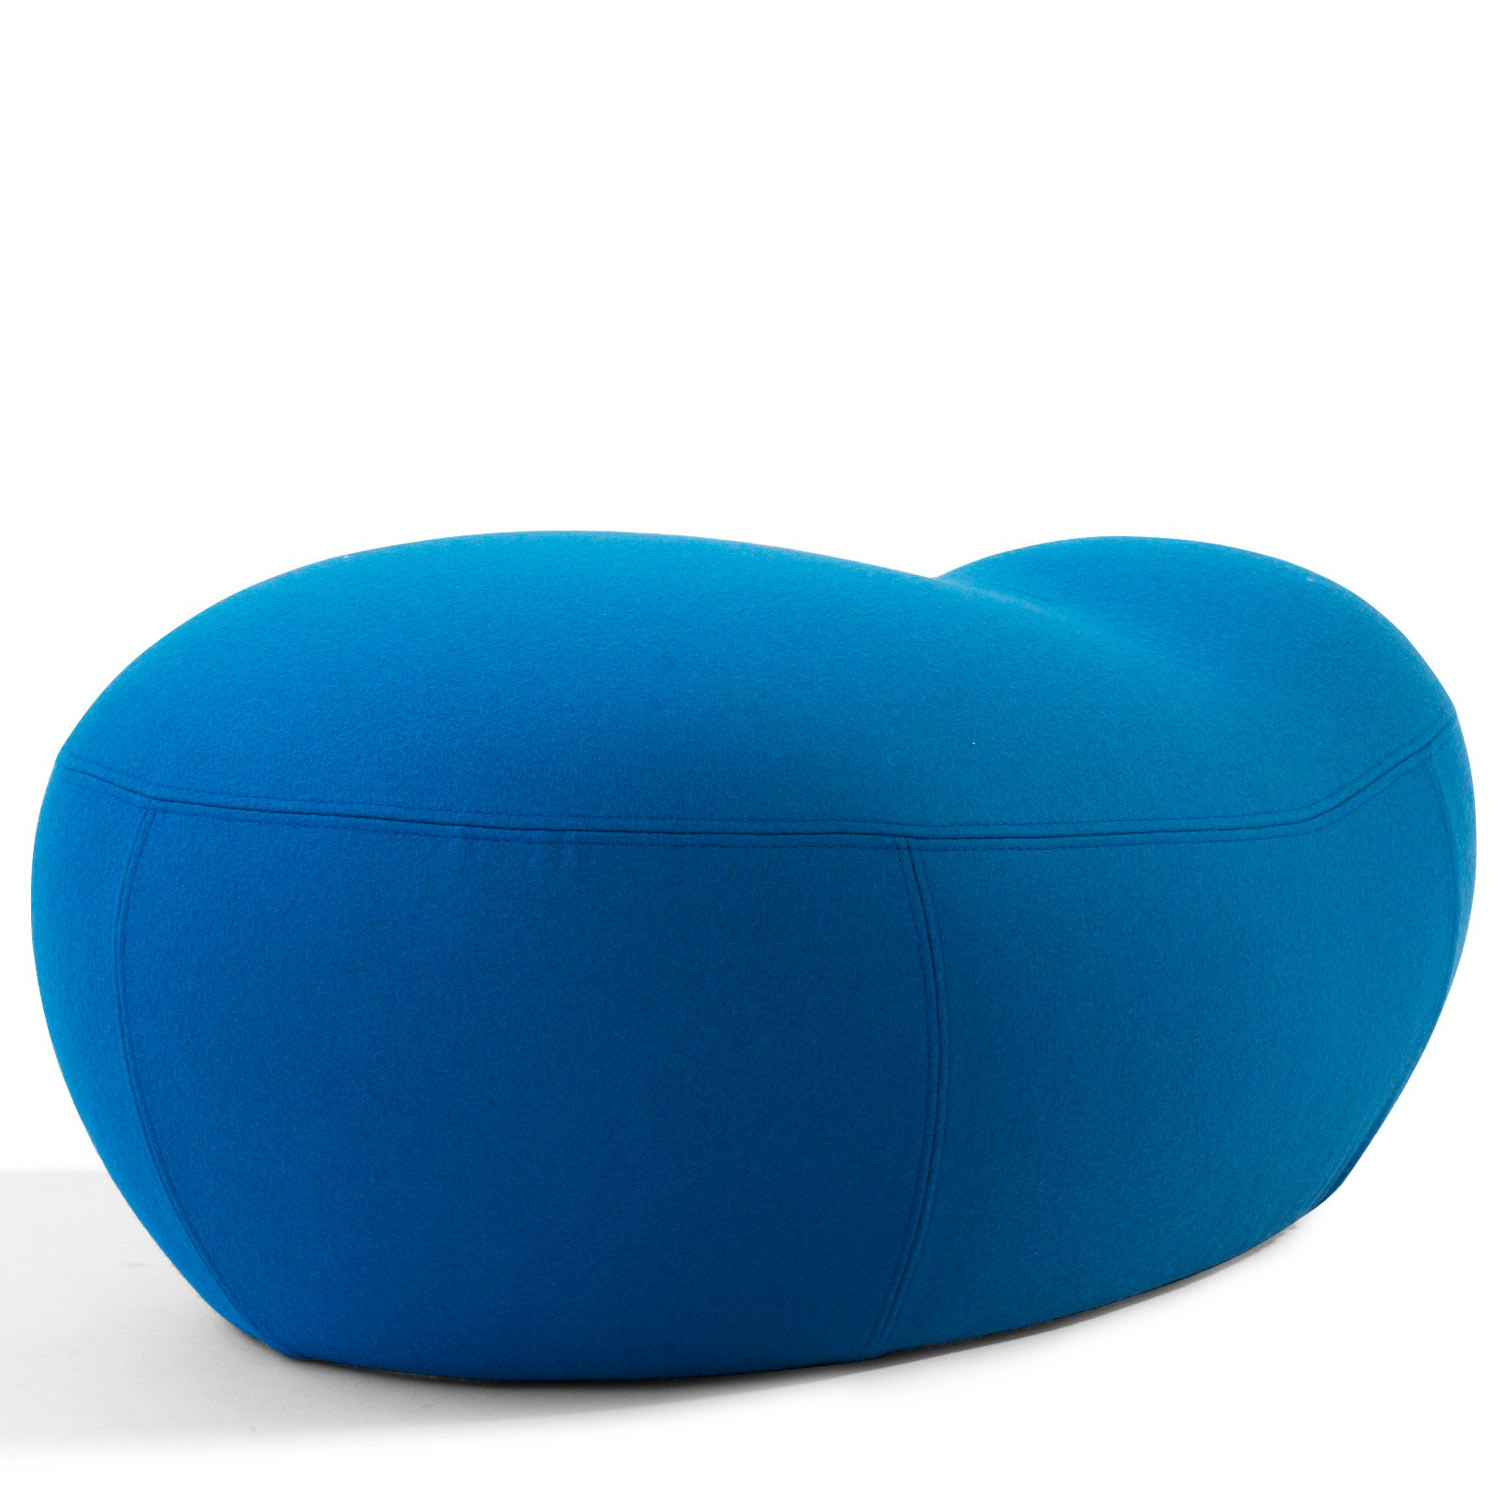 Puppa Ottoman from Stefan Borselius